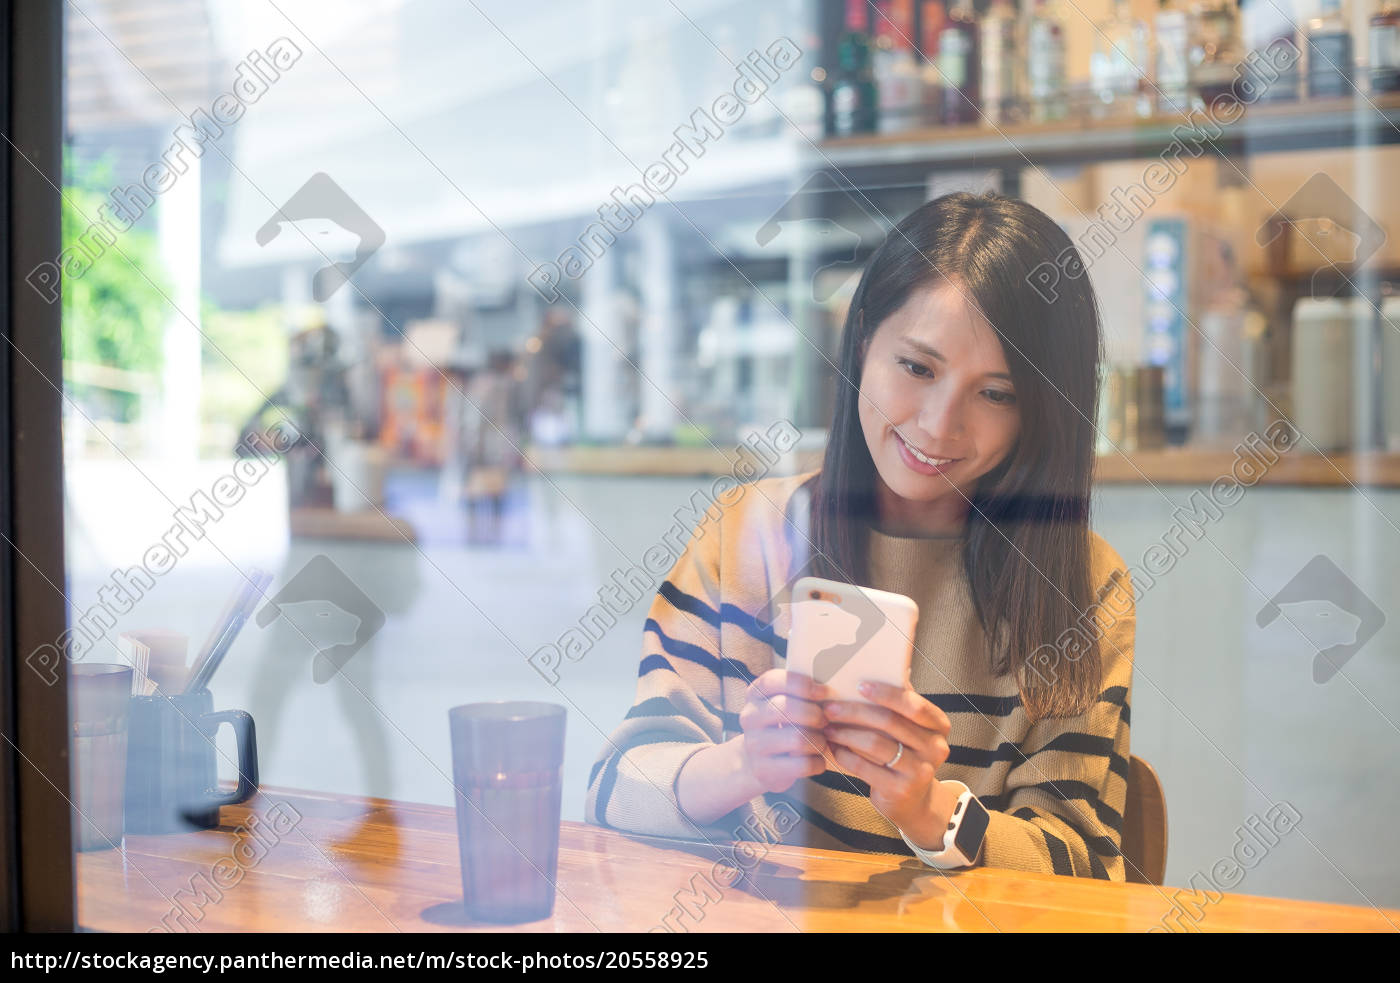 woman, using, mobile, phone, in, cafe - 20558925